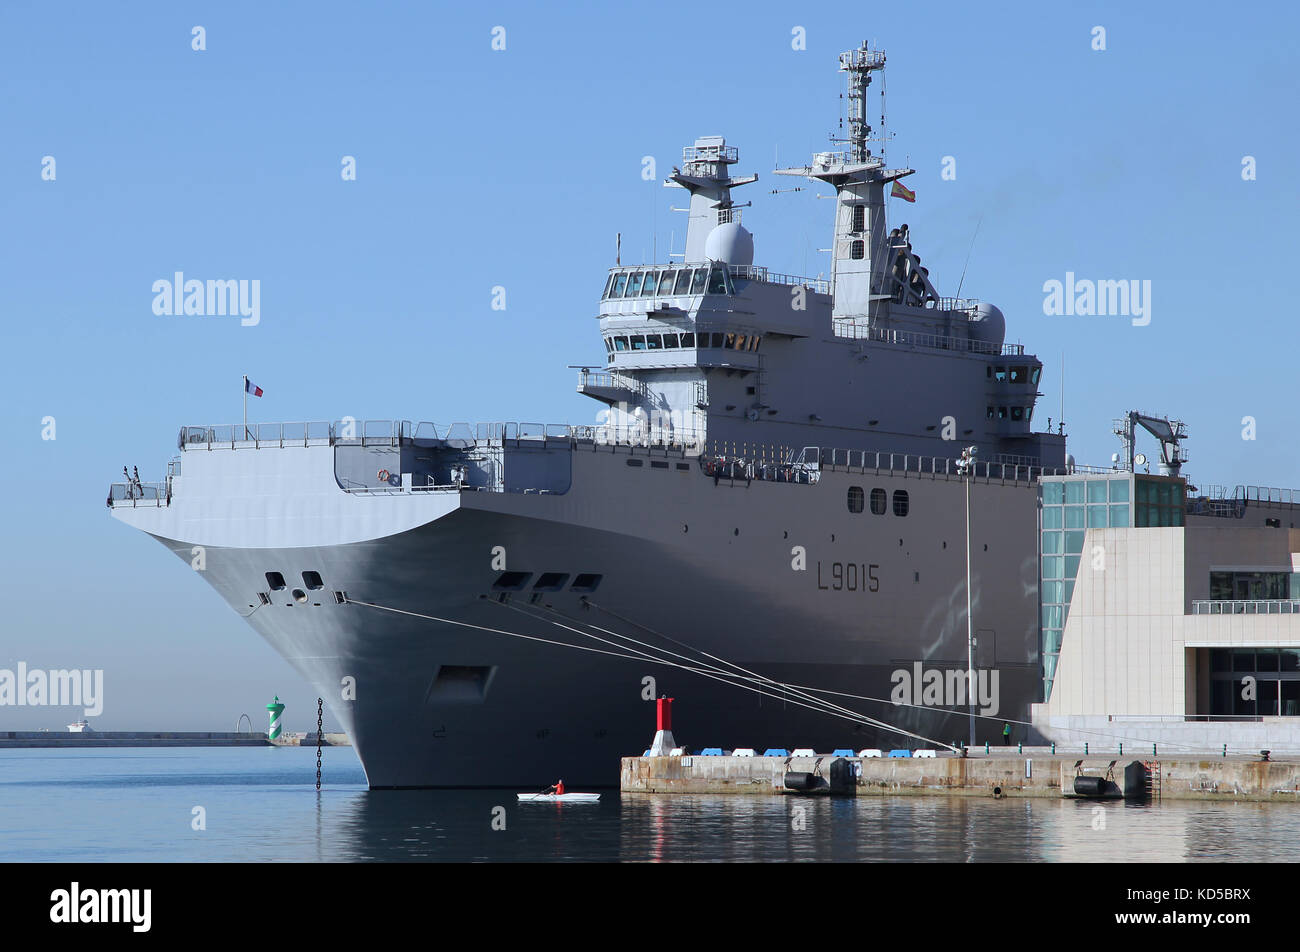 Warship and a man in a skiff rowing boat in Barcelona port Catalunya Spain - Stock Image